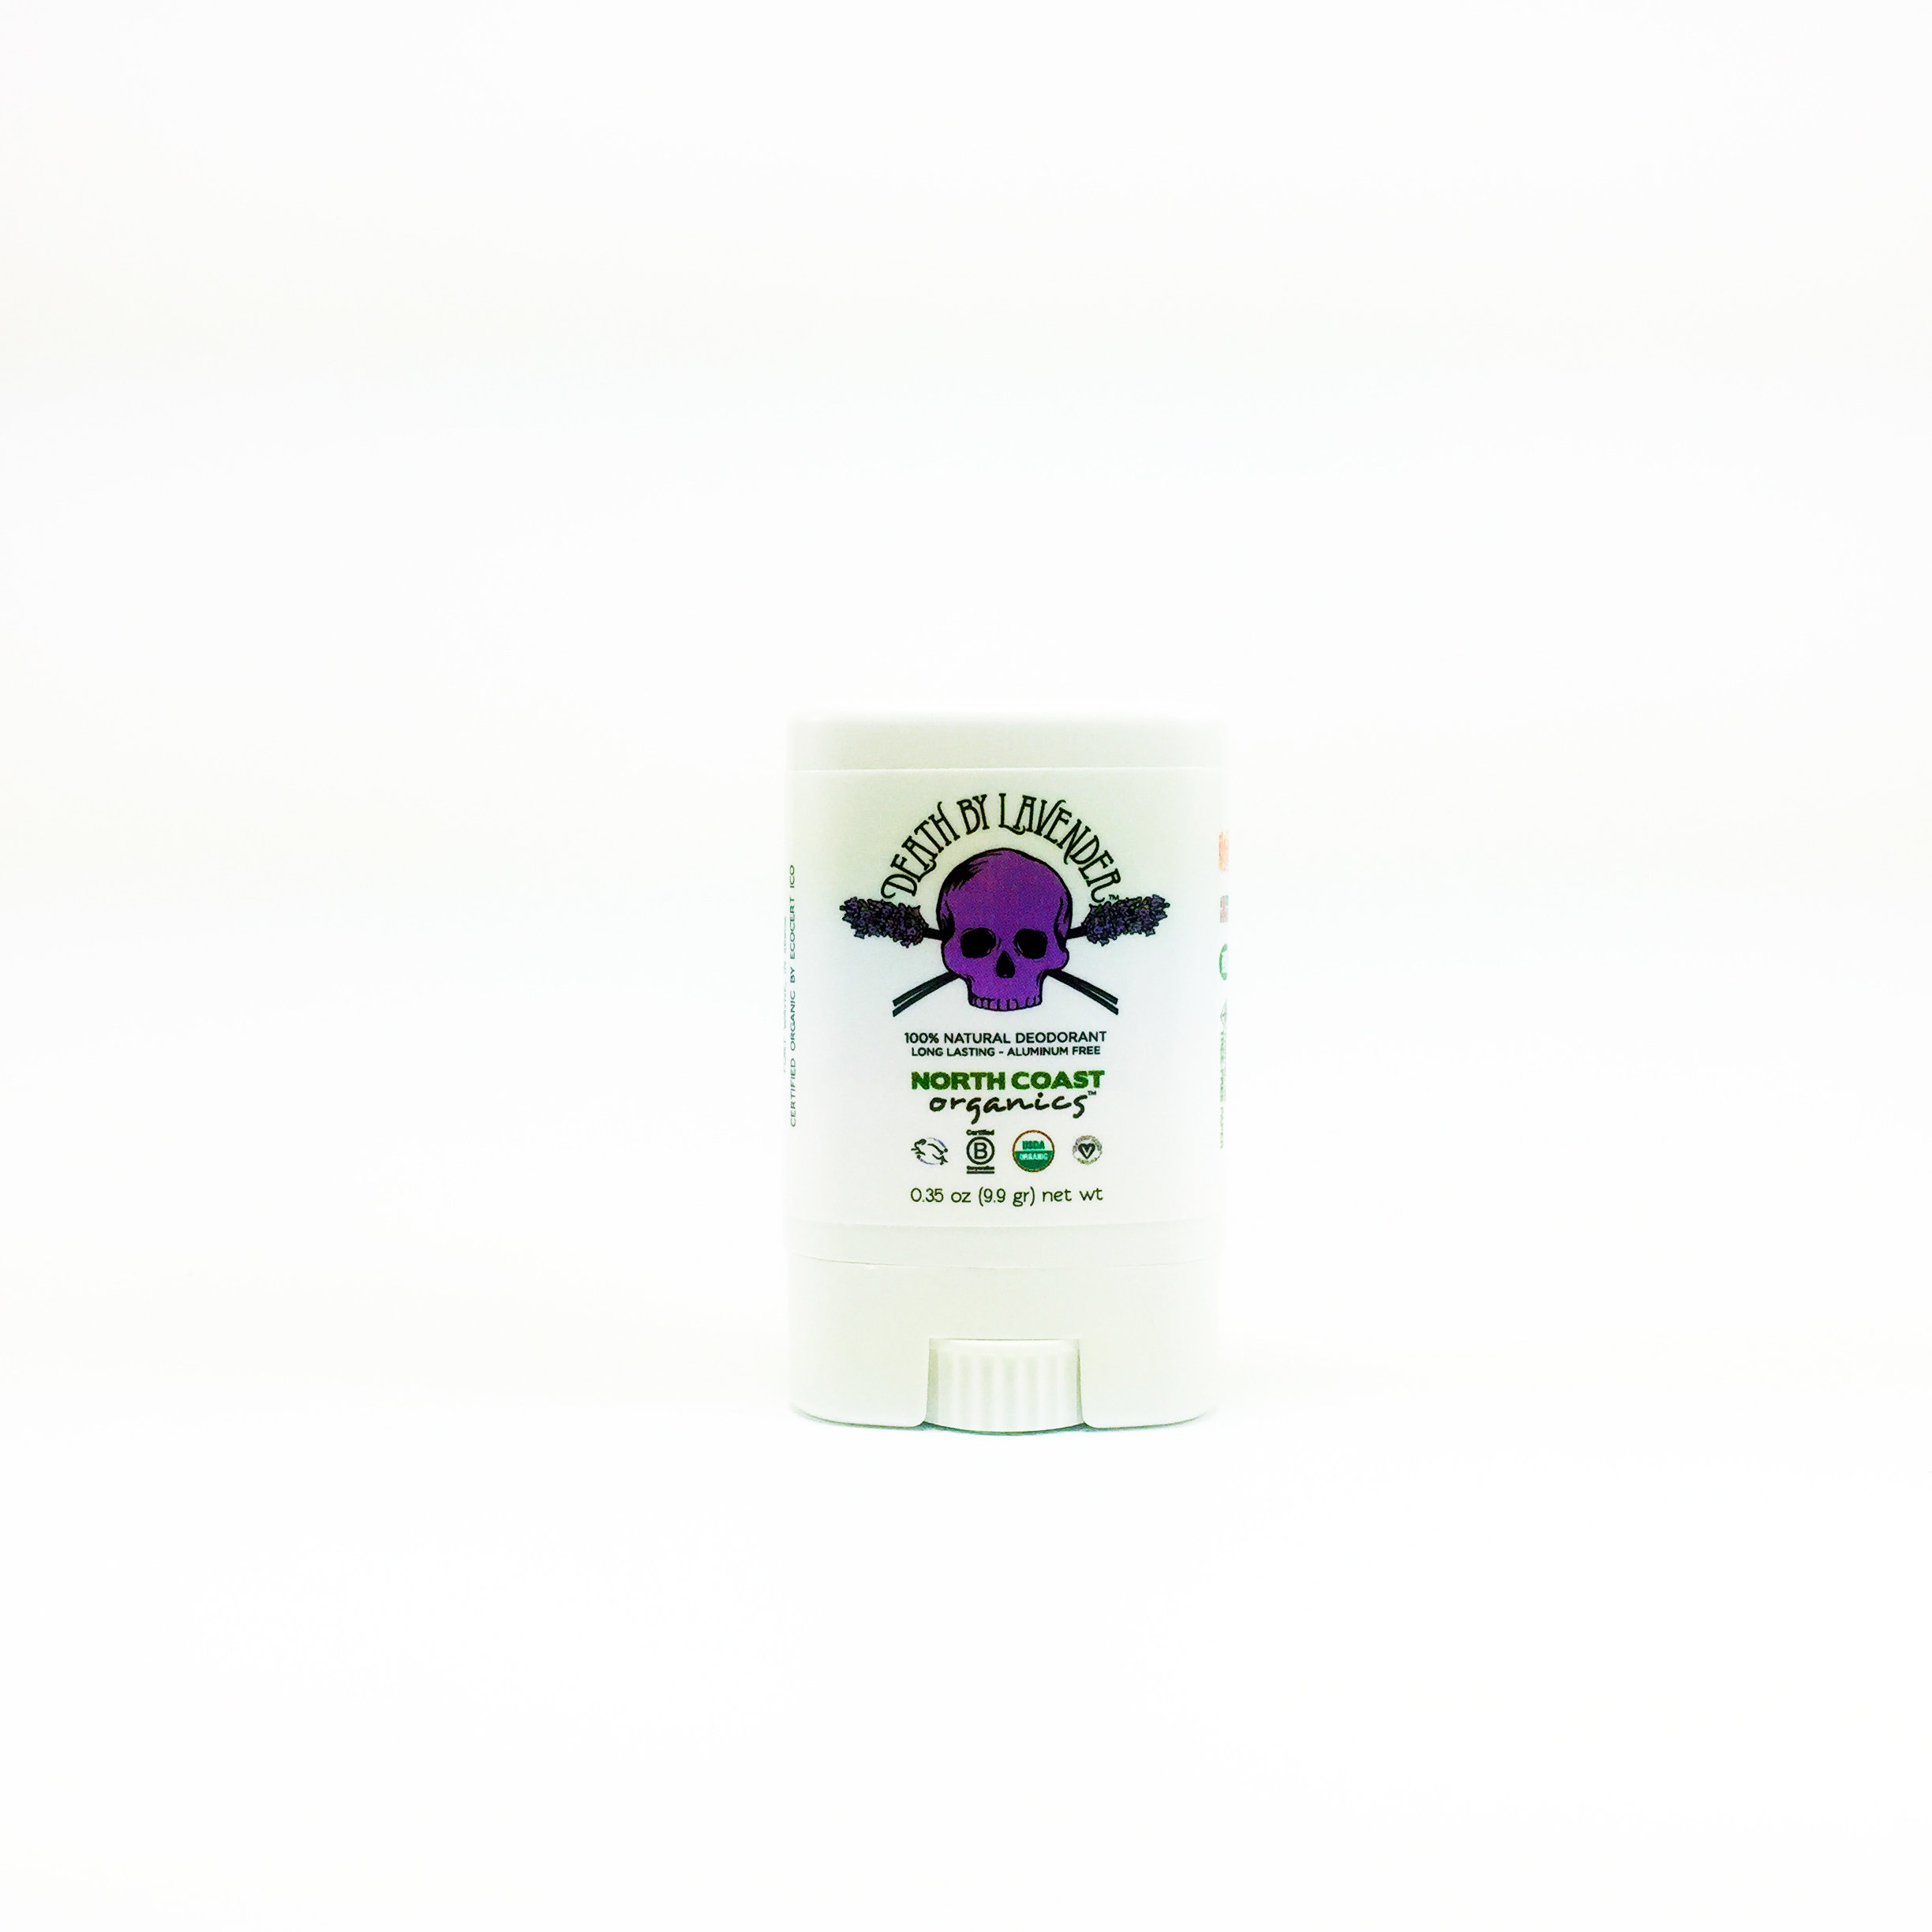 Death By Lavender - Travel Size Organic Deodorant 0.35 oz 2001